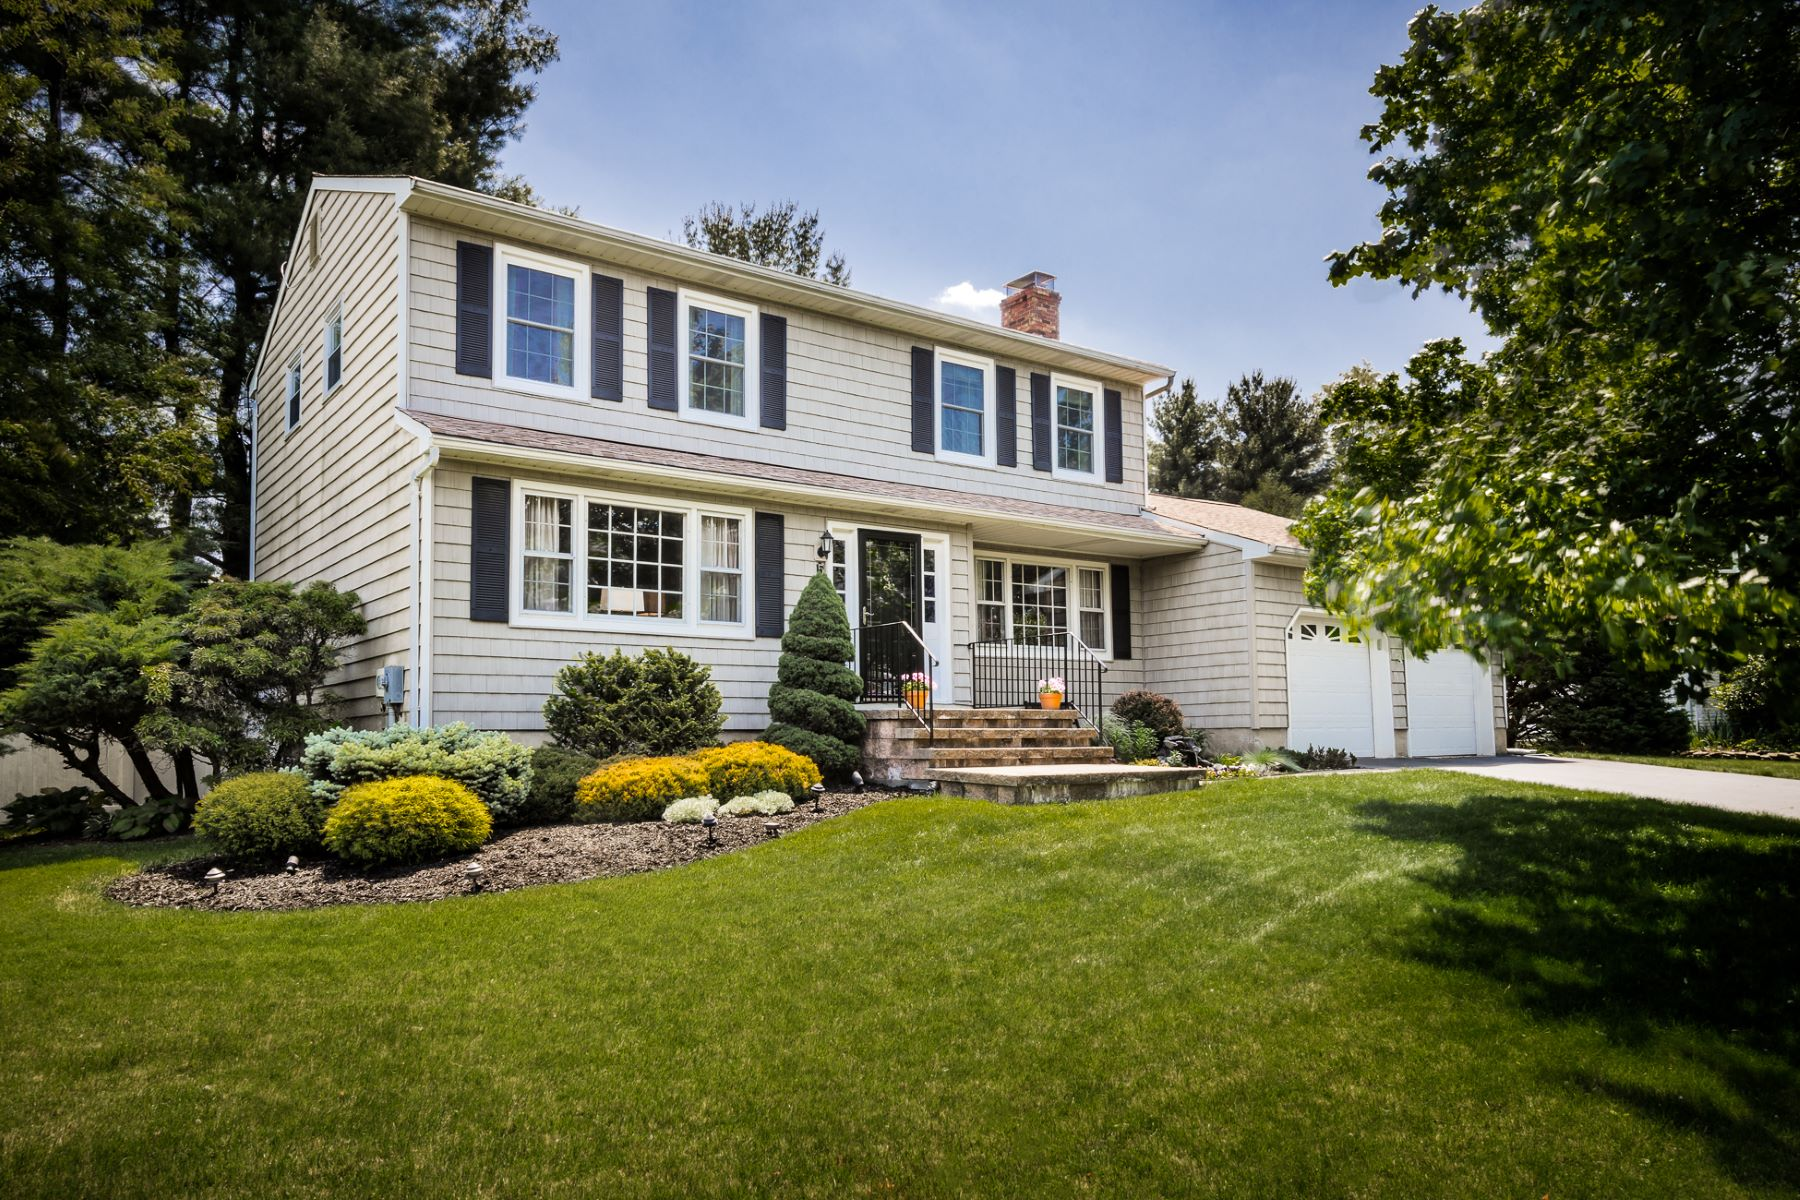 Single Family Home for Sale at Tucked Away in Lawrenceville - Lawrence Township 5 Heritage Way Trenton, New Jersey 08648 United States